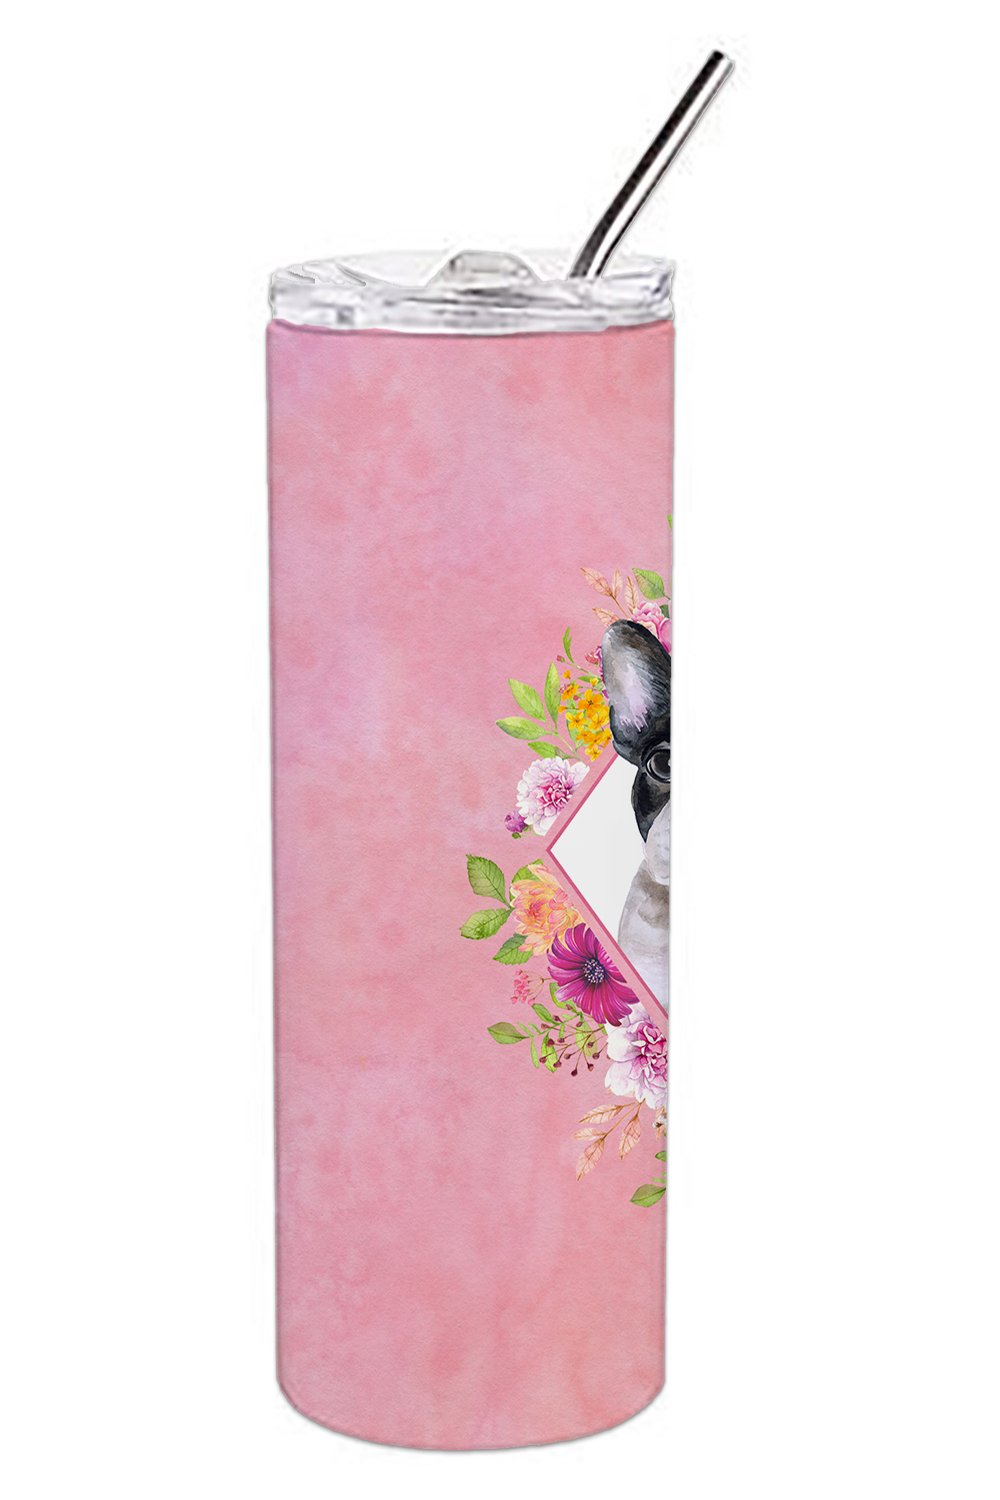 French Bulldog Pink Flowers Double Walled Stainless Steel 20 oz Skinny Tumbler CK4143TBL20 by Caroline's Treasures